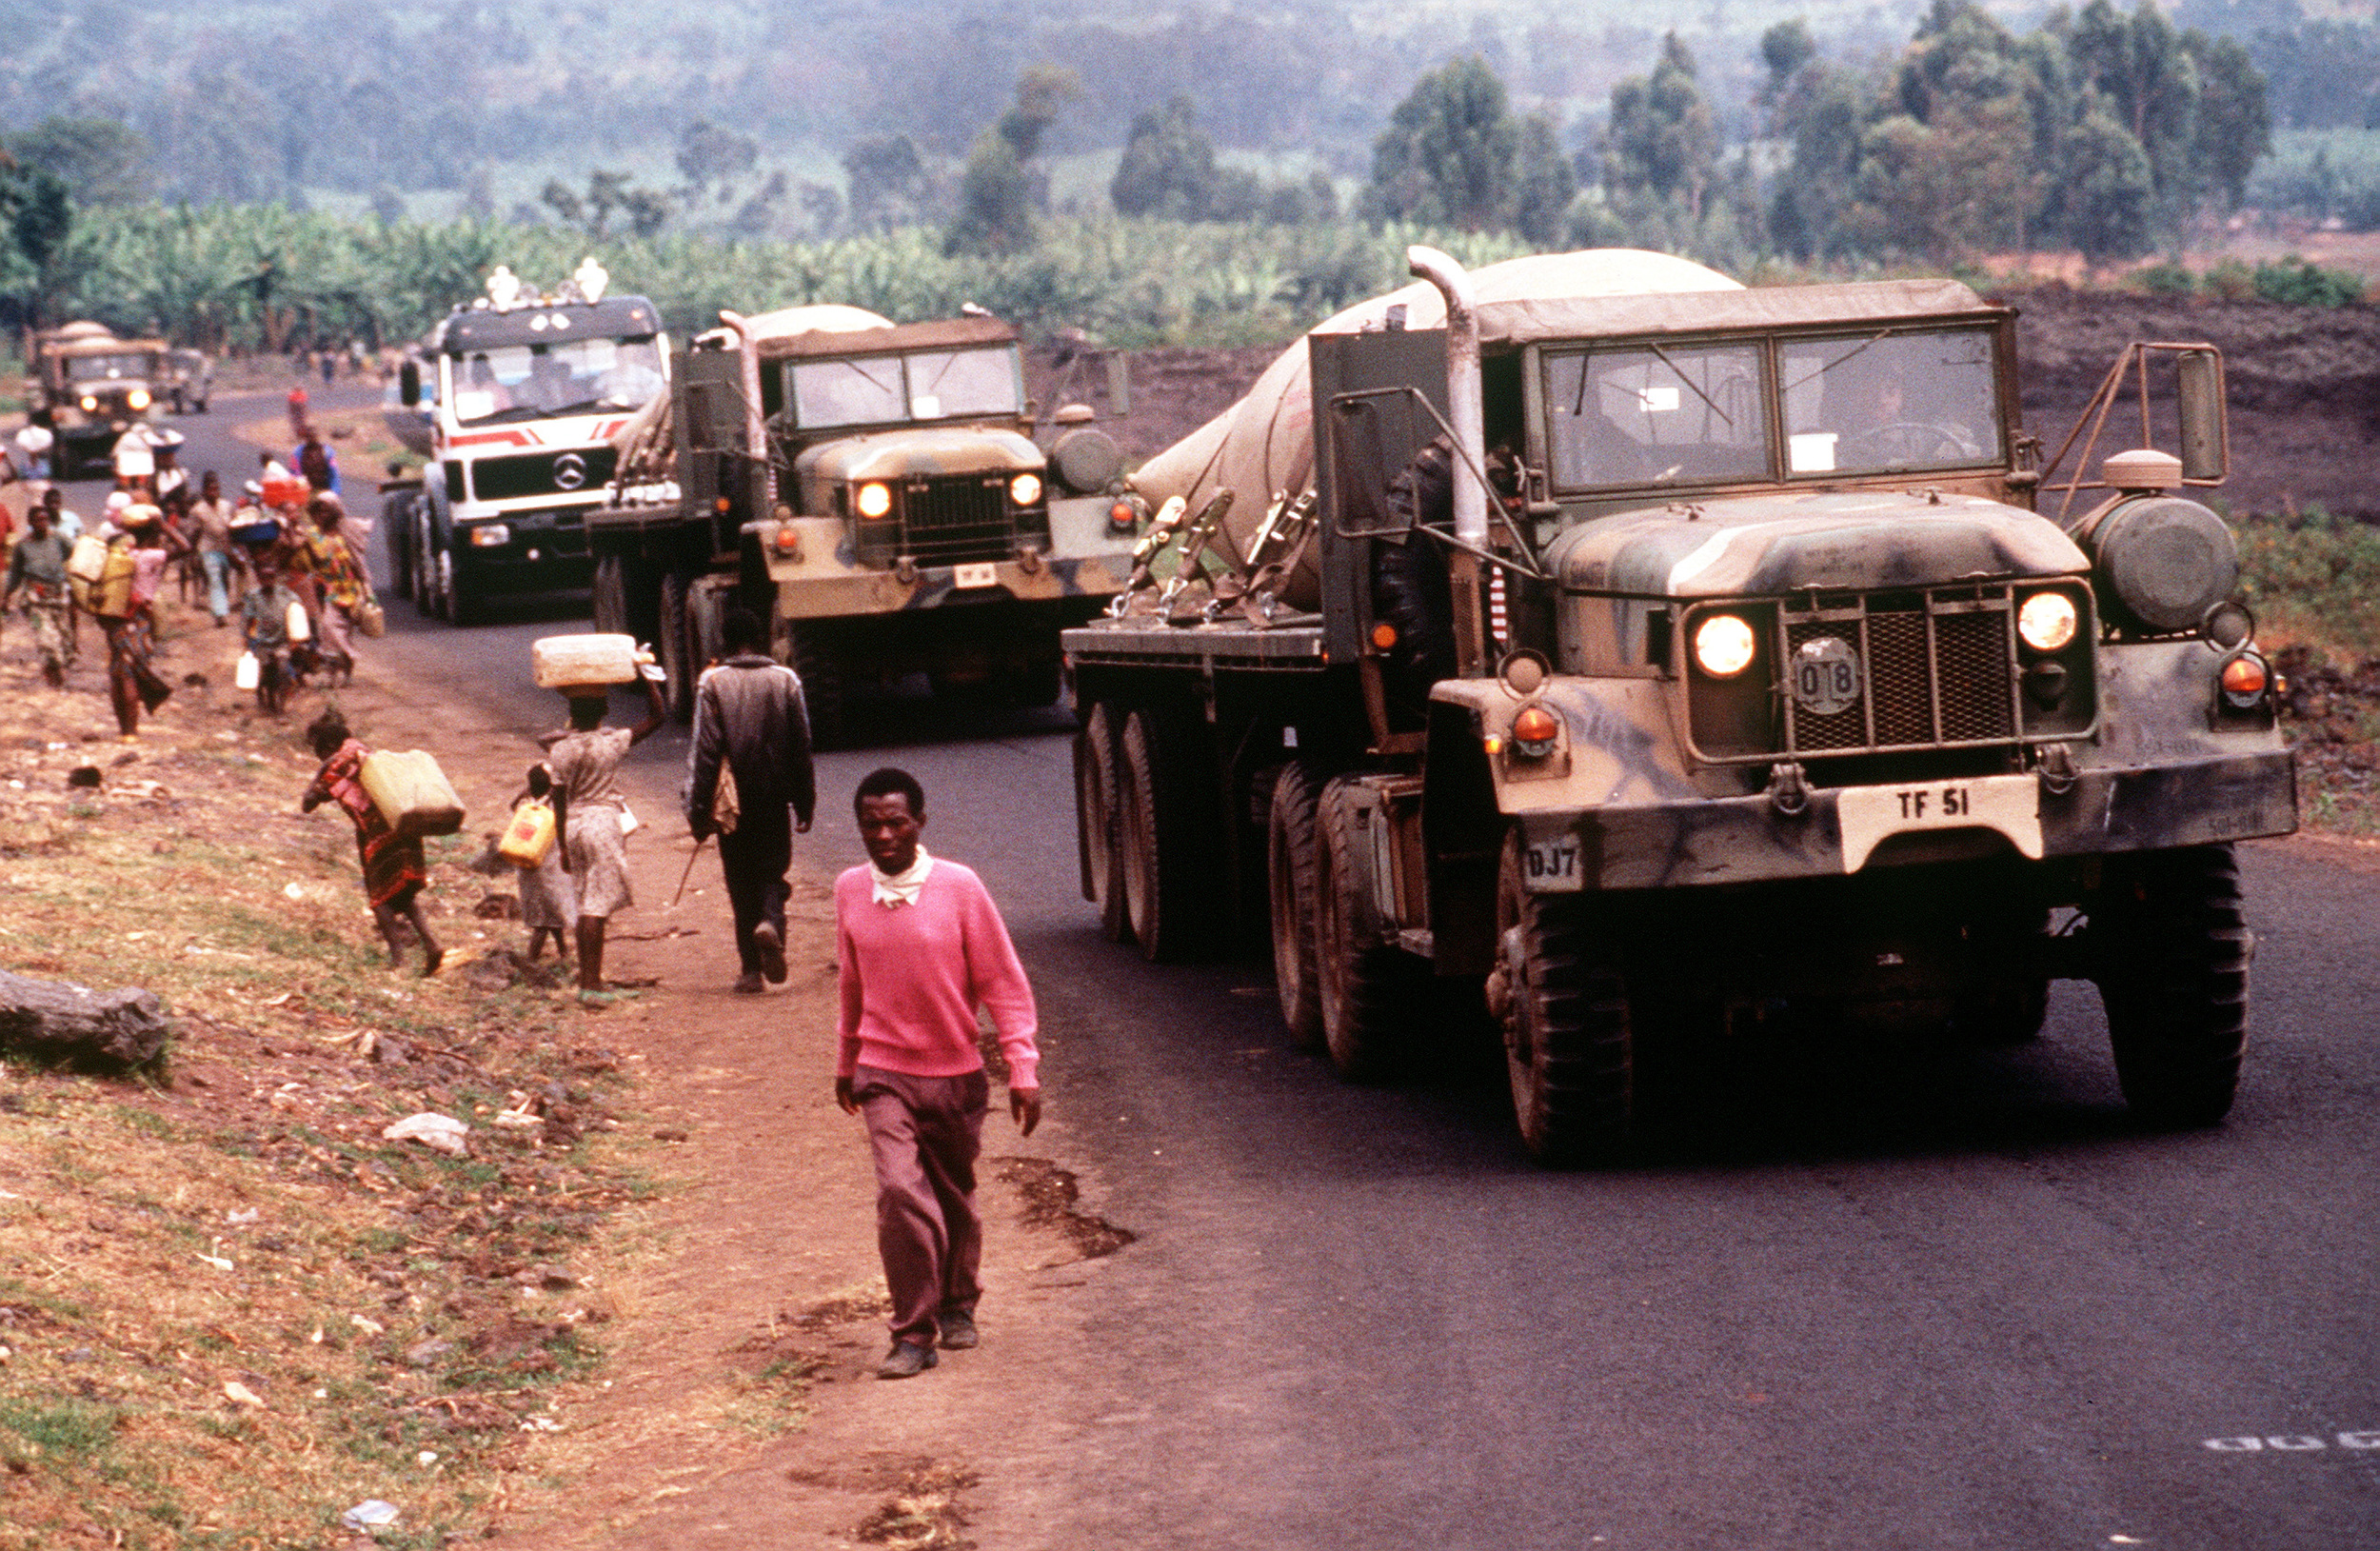 A convoy brings fresh water to Rwandan refugees located at Camp Kimbumba, Zaire i August, 1994. Credit:TSgt. Marc Krause via Wikimedia Commons.